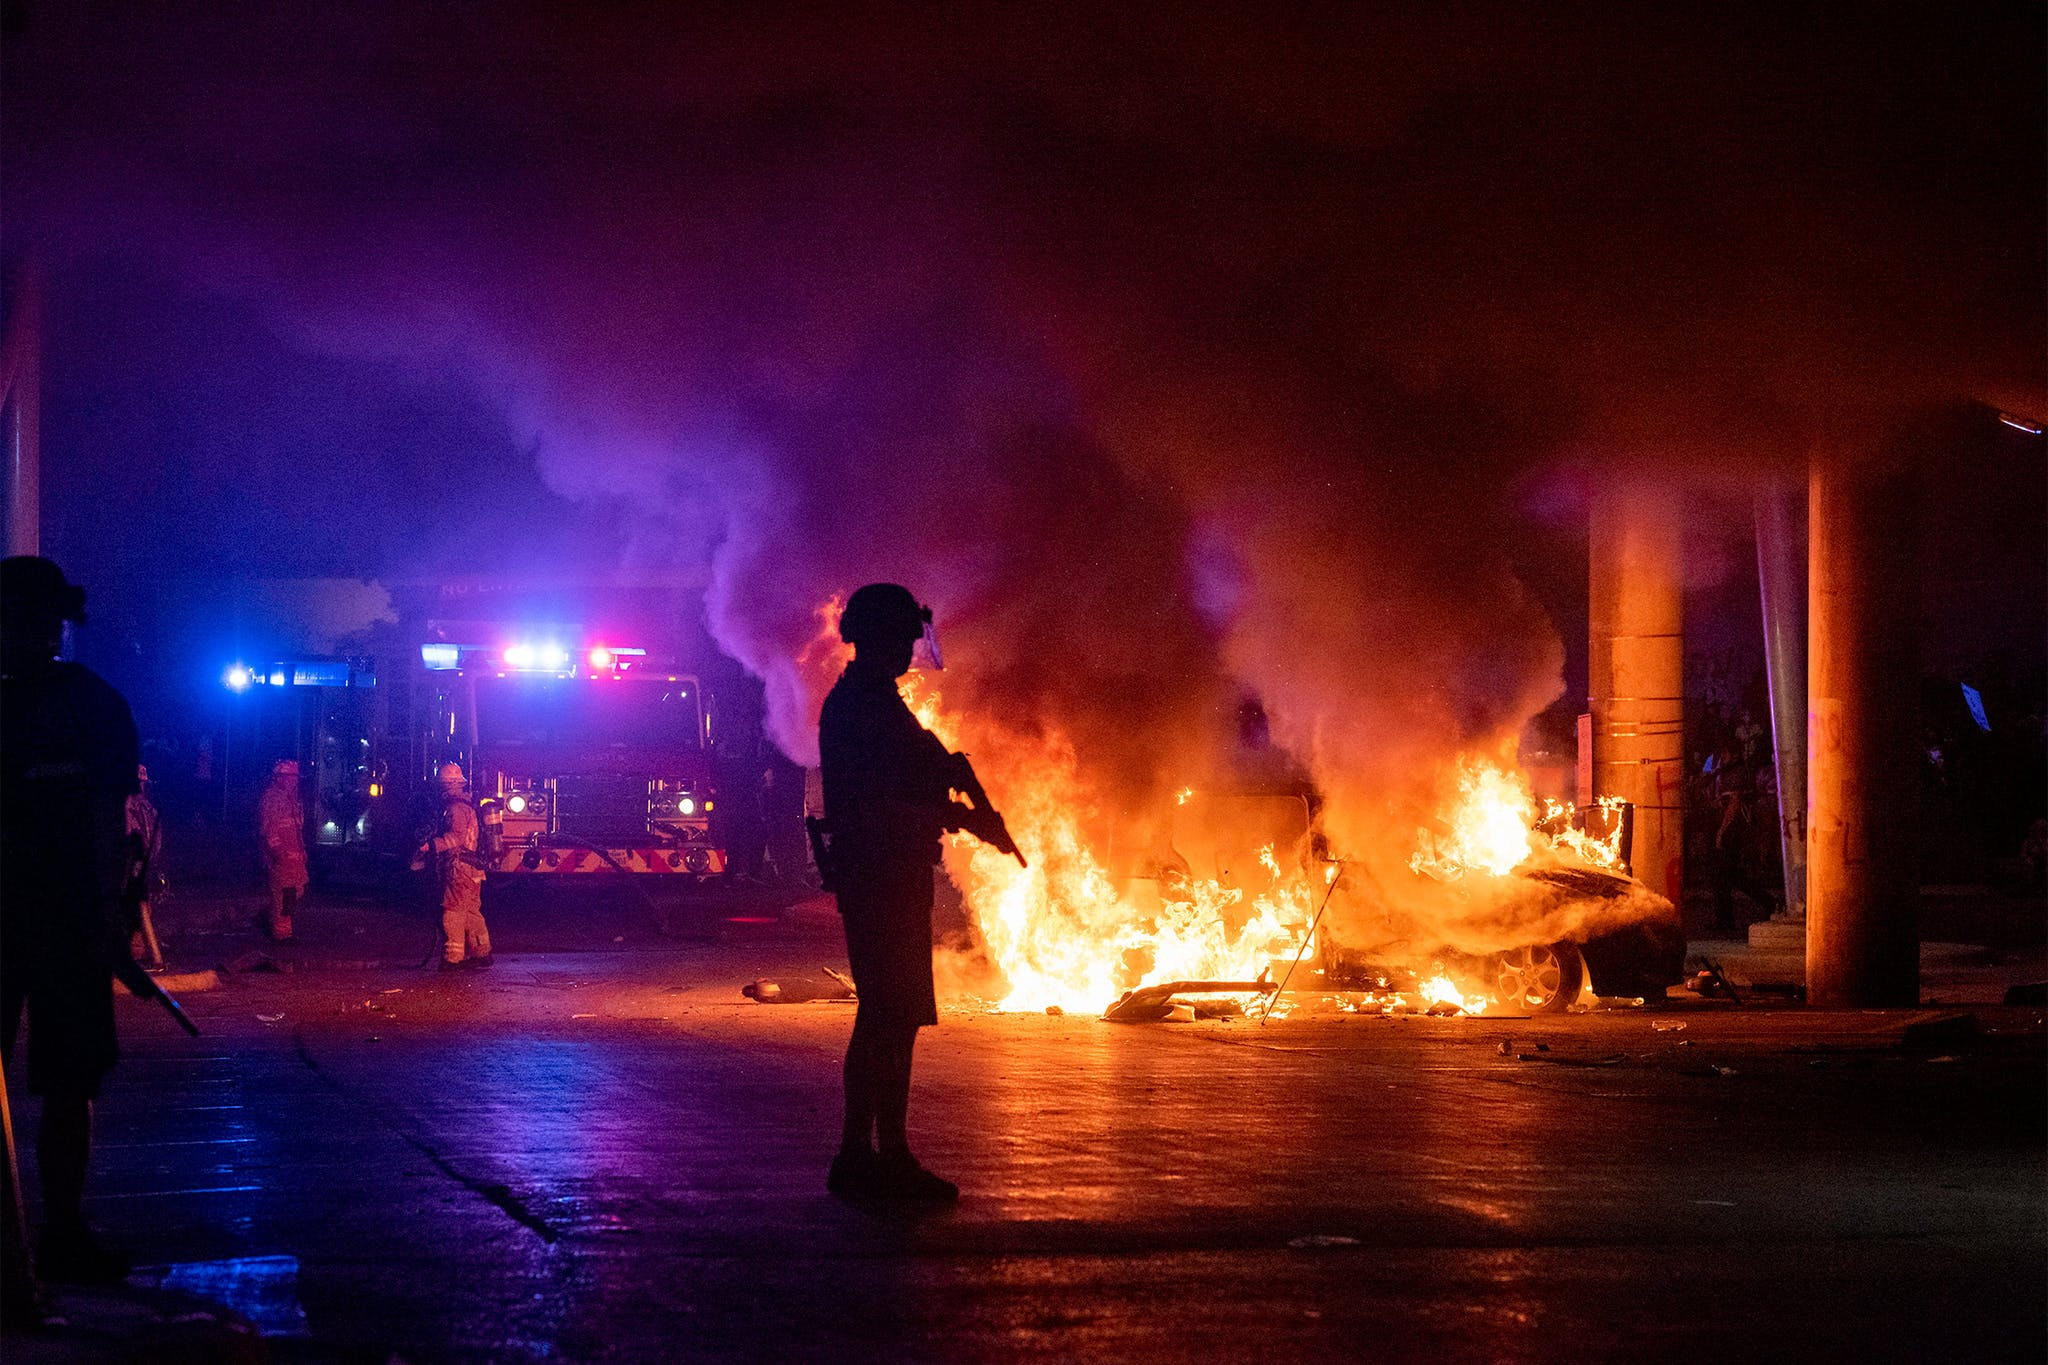 Officer protects the perimeter of a burning car under I-35 so firefighters can put it out during protests in Austin on May 30, 2020.